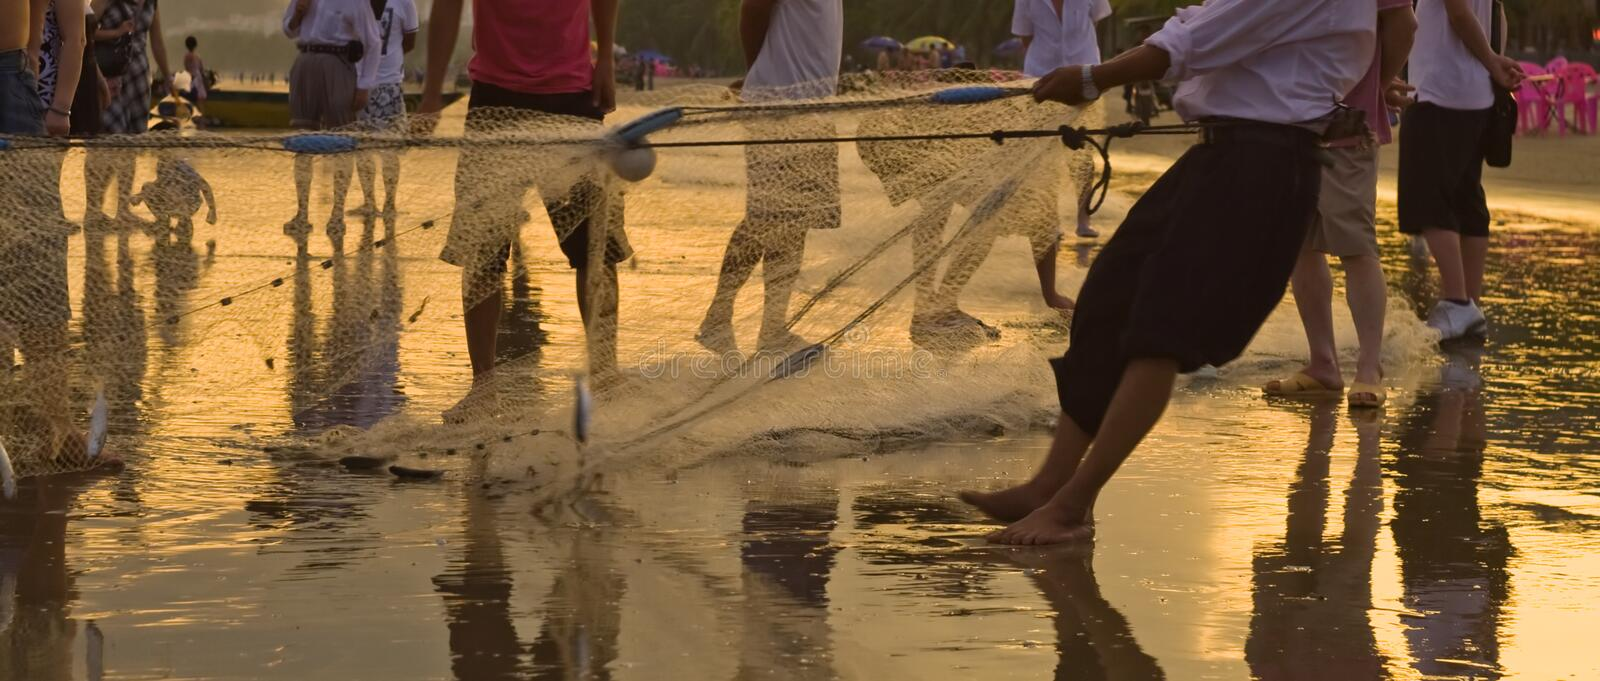 Fishing with group of Hainan fishers gathering the net royalty free stock images